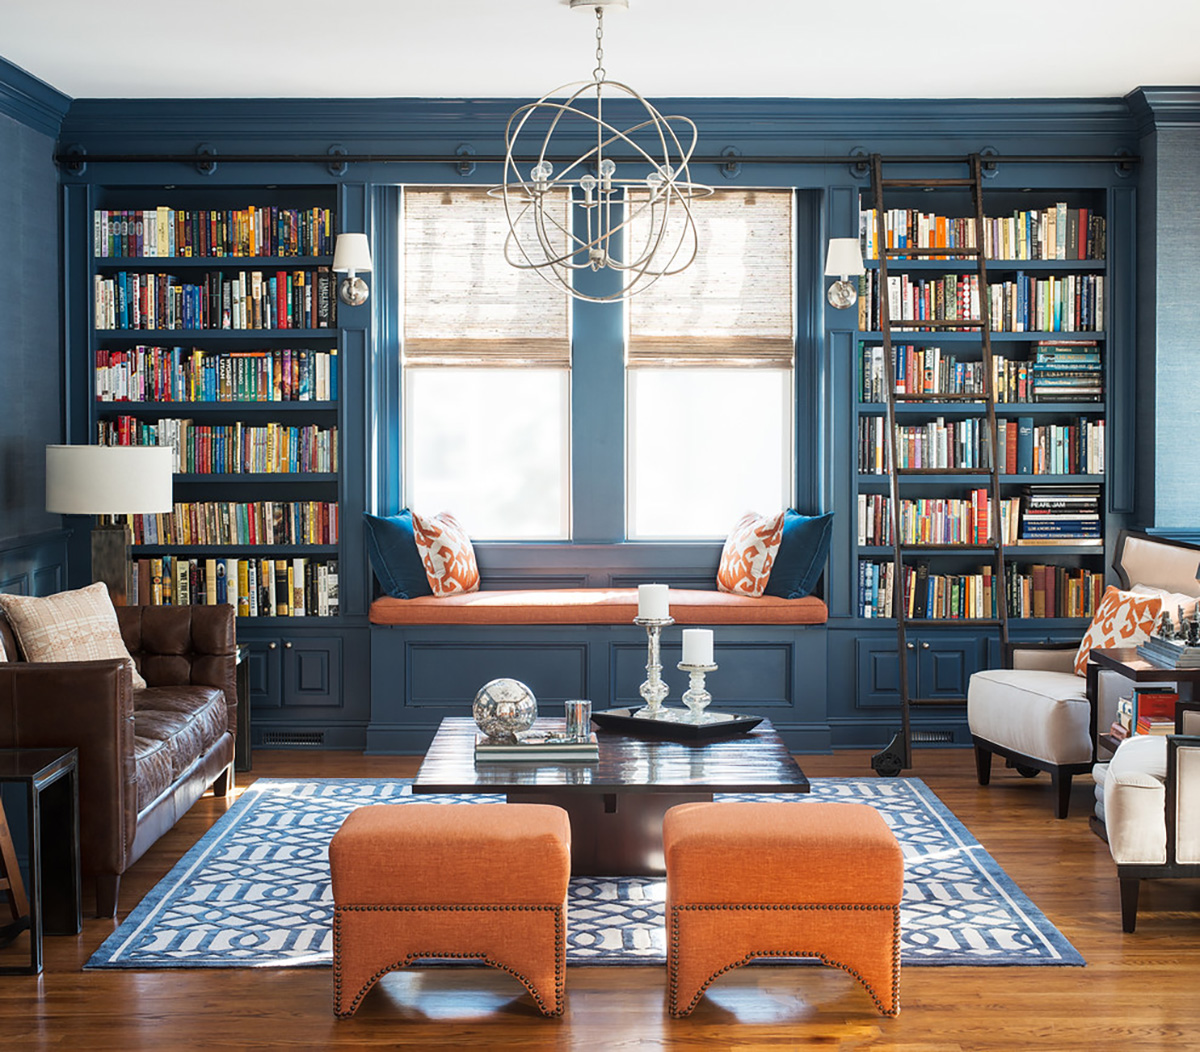 Lovely-Living-Room-Transitional-design-ideas-for-Orange-And-Blue-Decor-Decorating-Ideas